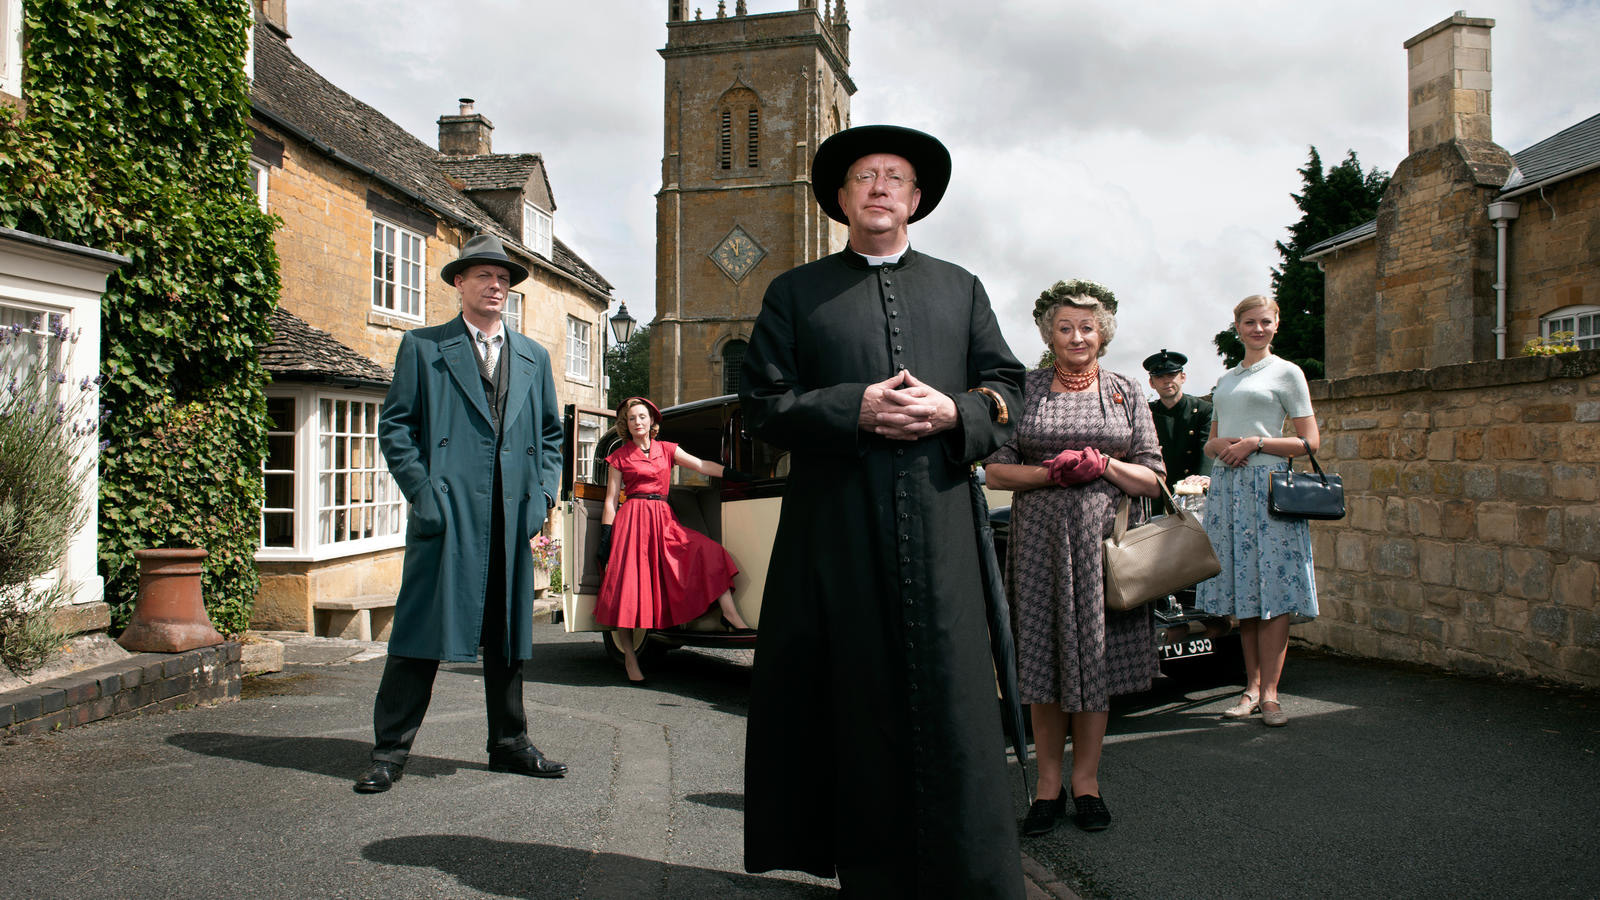 The cast of Father Brown standing together in the town center